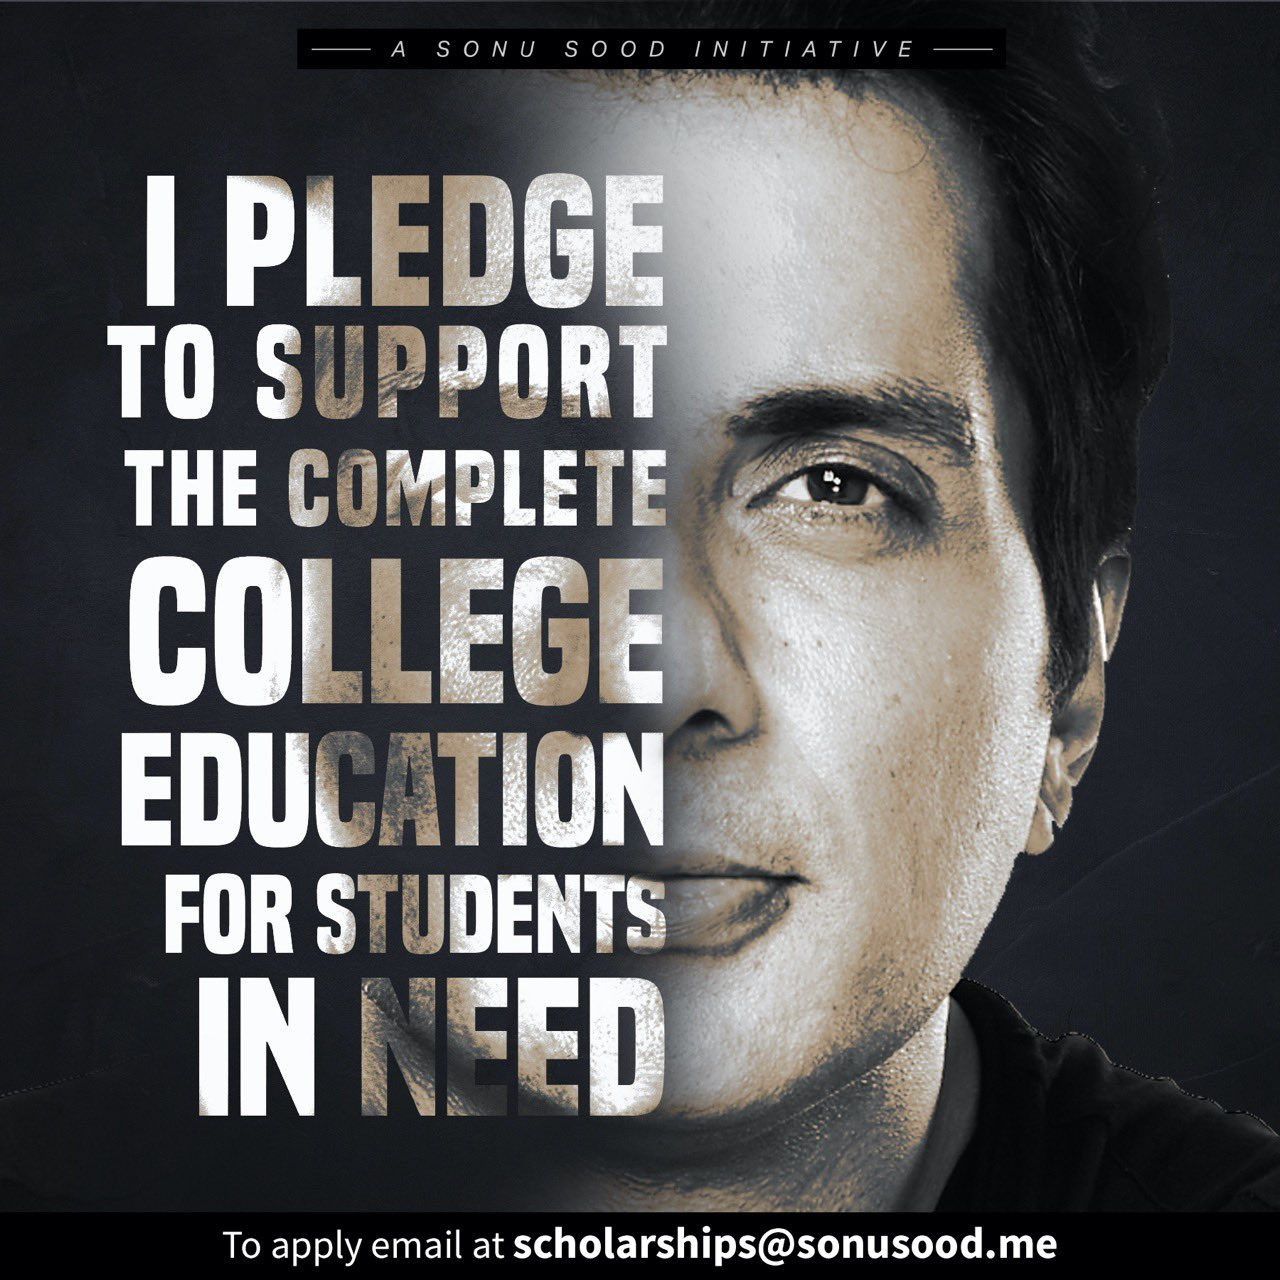 Actor Sonu Sood Announces Scholarships For Less-Privileged Students